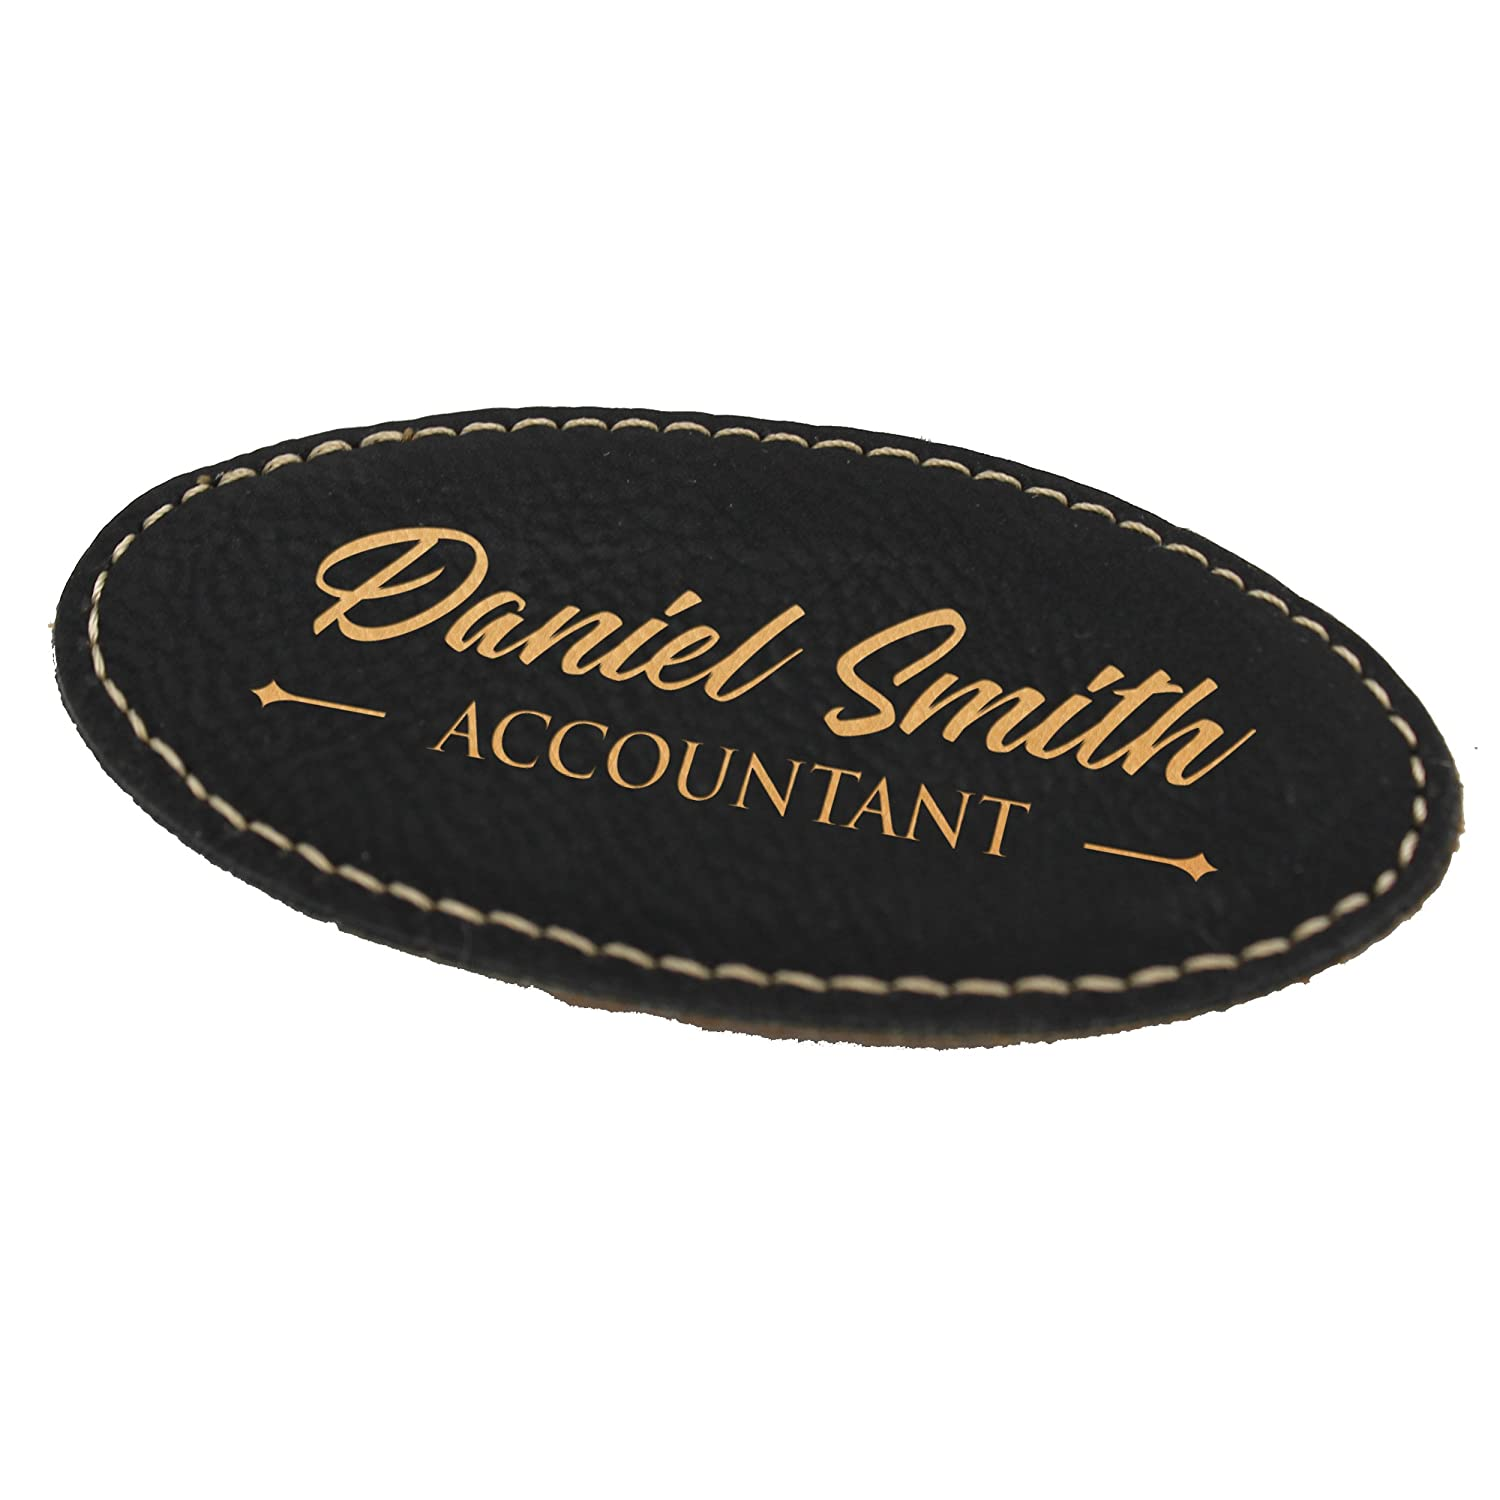 Personalized Name Tag - Custom Engraved Employee Badges - Monogrammed  Professional Name Tags (Black with Gold)